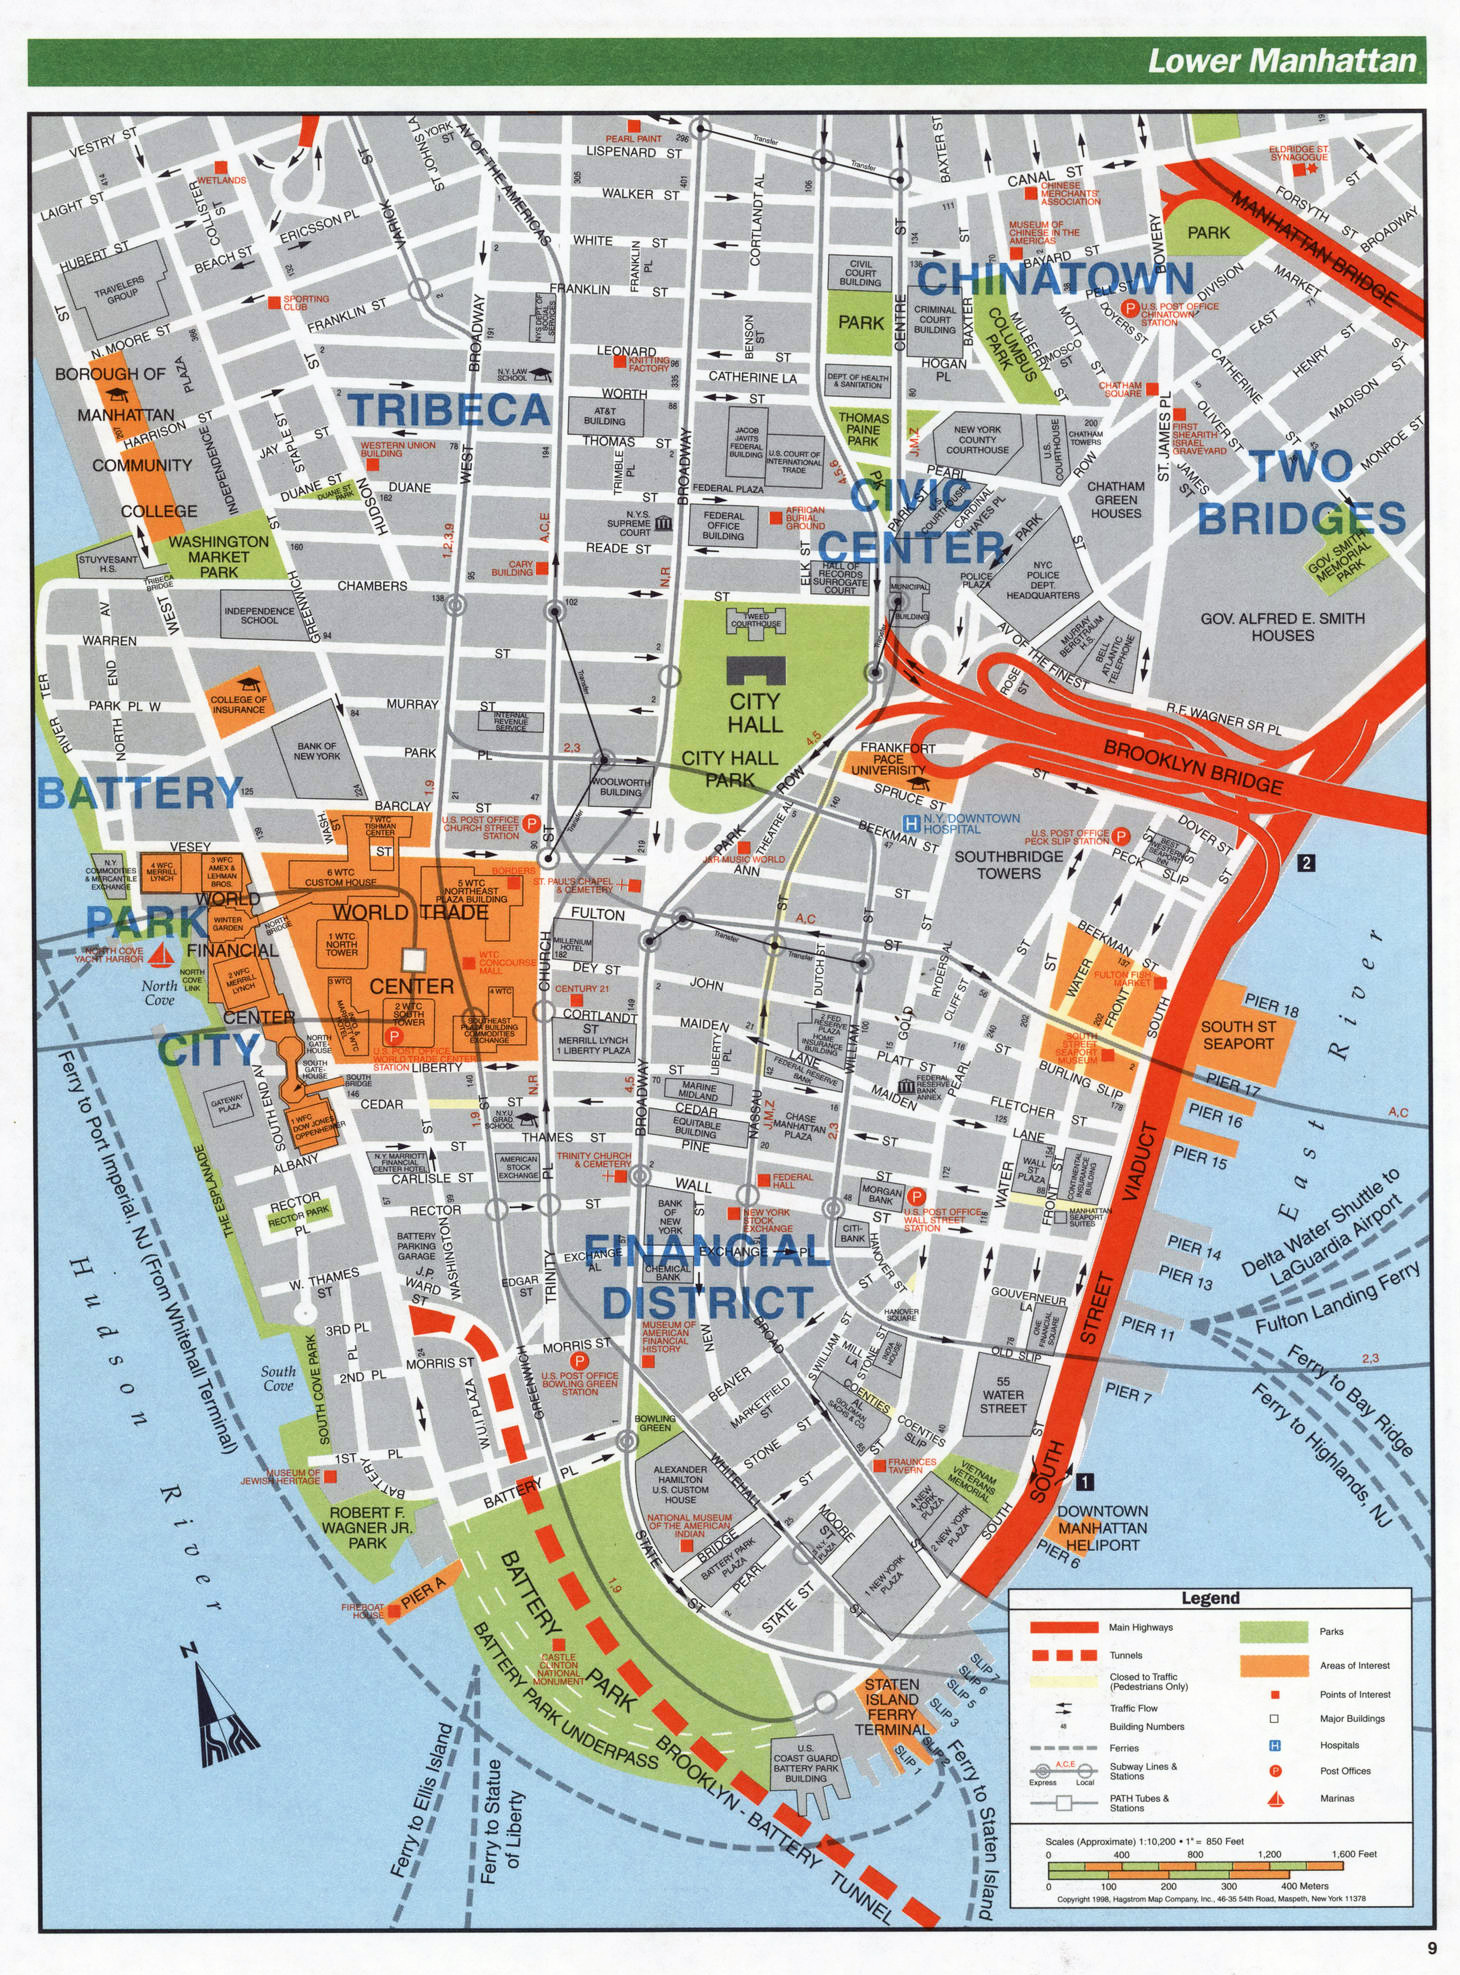 Large Detailed Road Map Of Lower Manhattan NYC Lower Manhattan - Road map of new york state